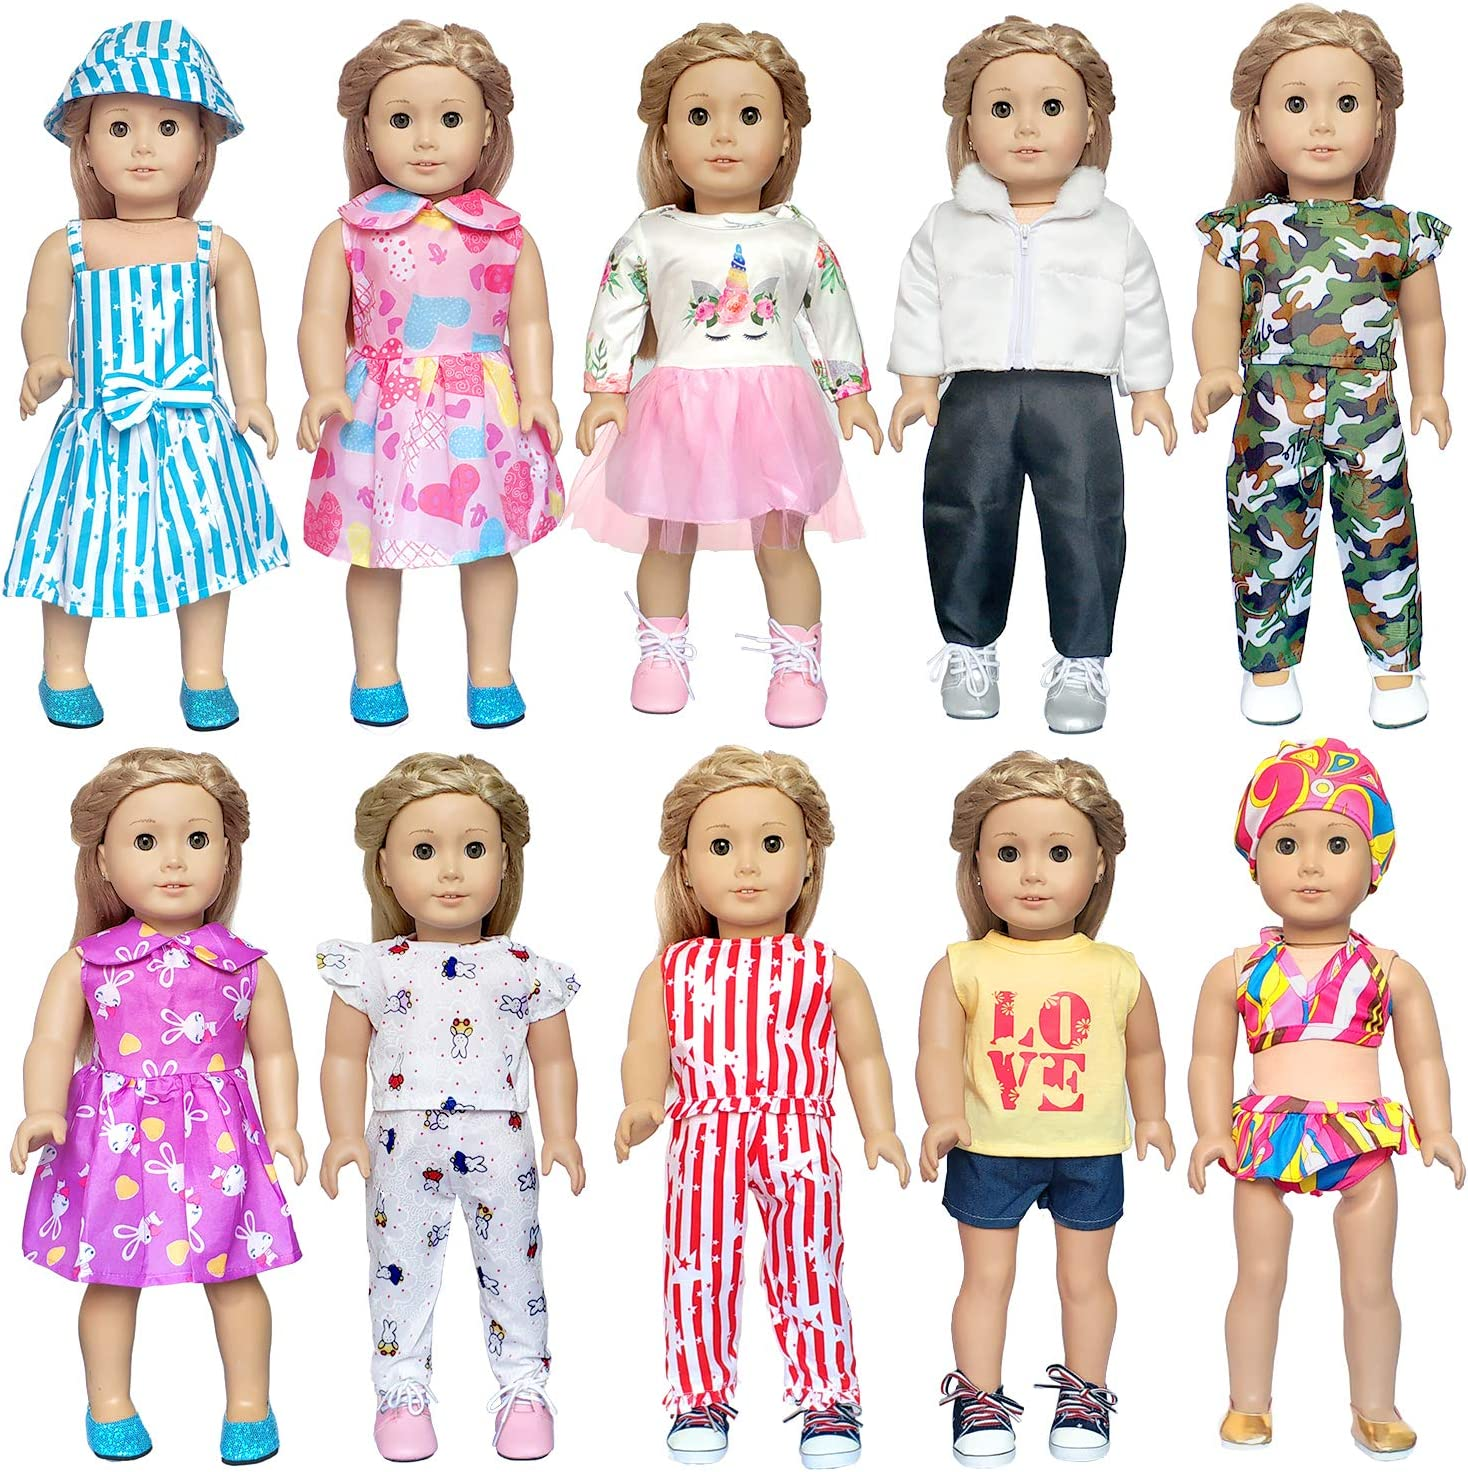 Doll Clothes Pajames Shoes for 18inch Our Generation My Life Dolls